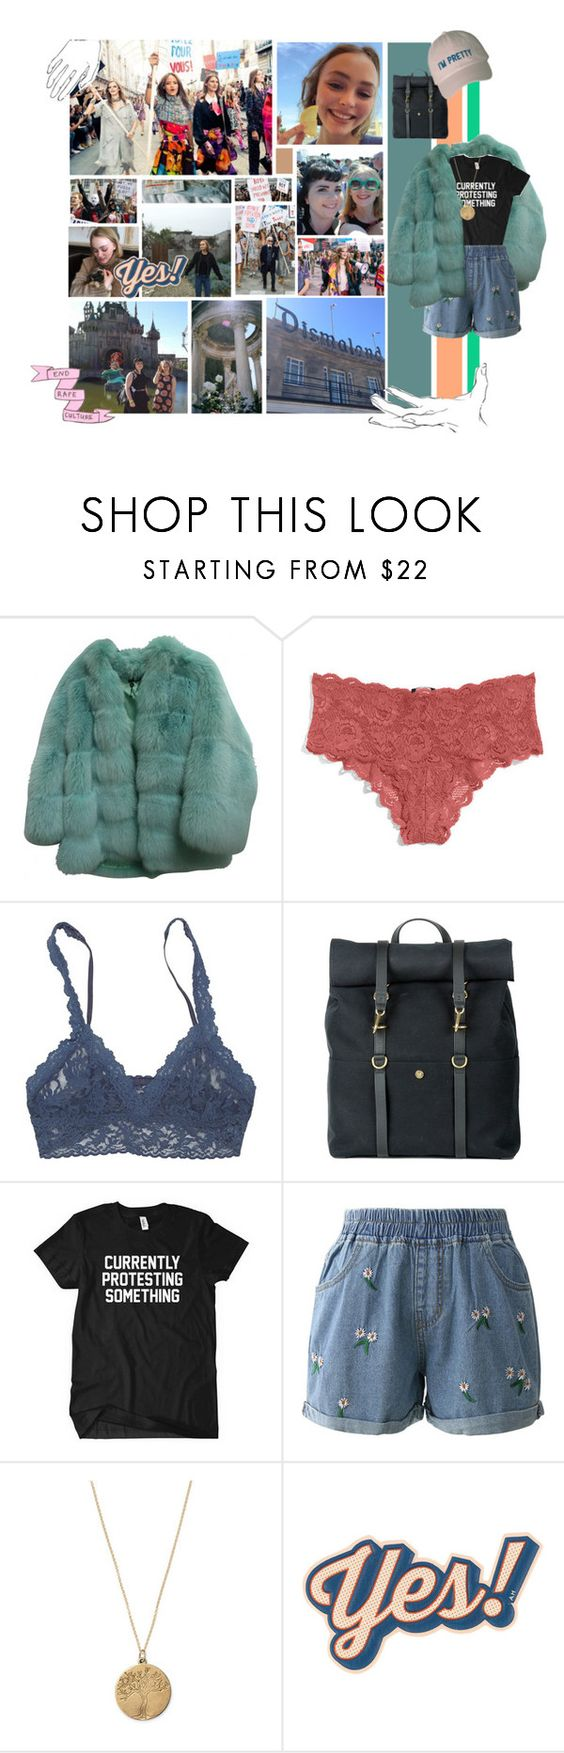 """The revolution starts here."" by shans10 ❤ liked on Polyvore featuring Chanel, Umbra, Gucci, Cosabella, Hanky Panky, Mismo, Chicwish, Stella & Dot, Anya Hindmarch and American Eagle Outfitters"